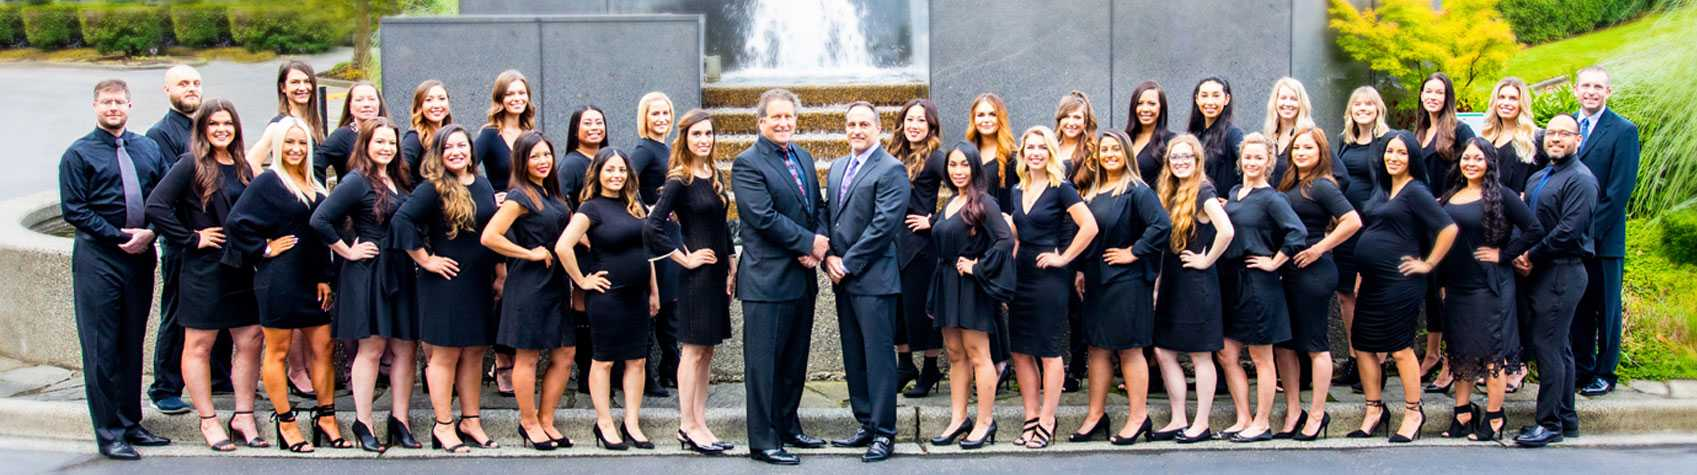 Group photo of Seattle Plastic Surgery staff